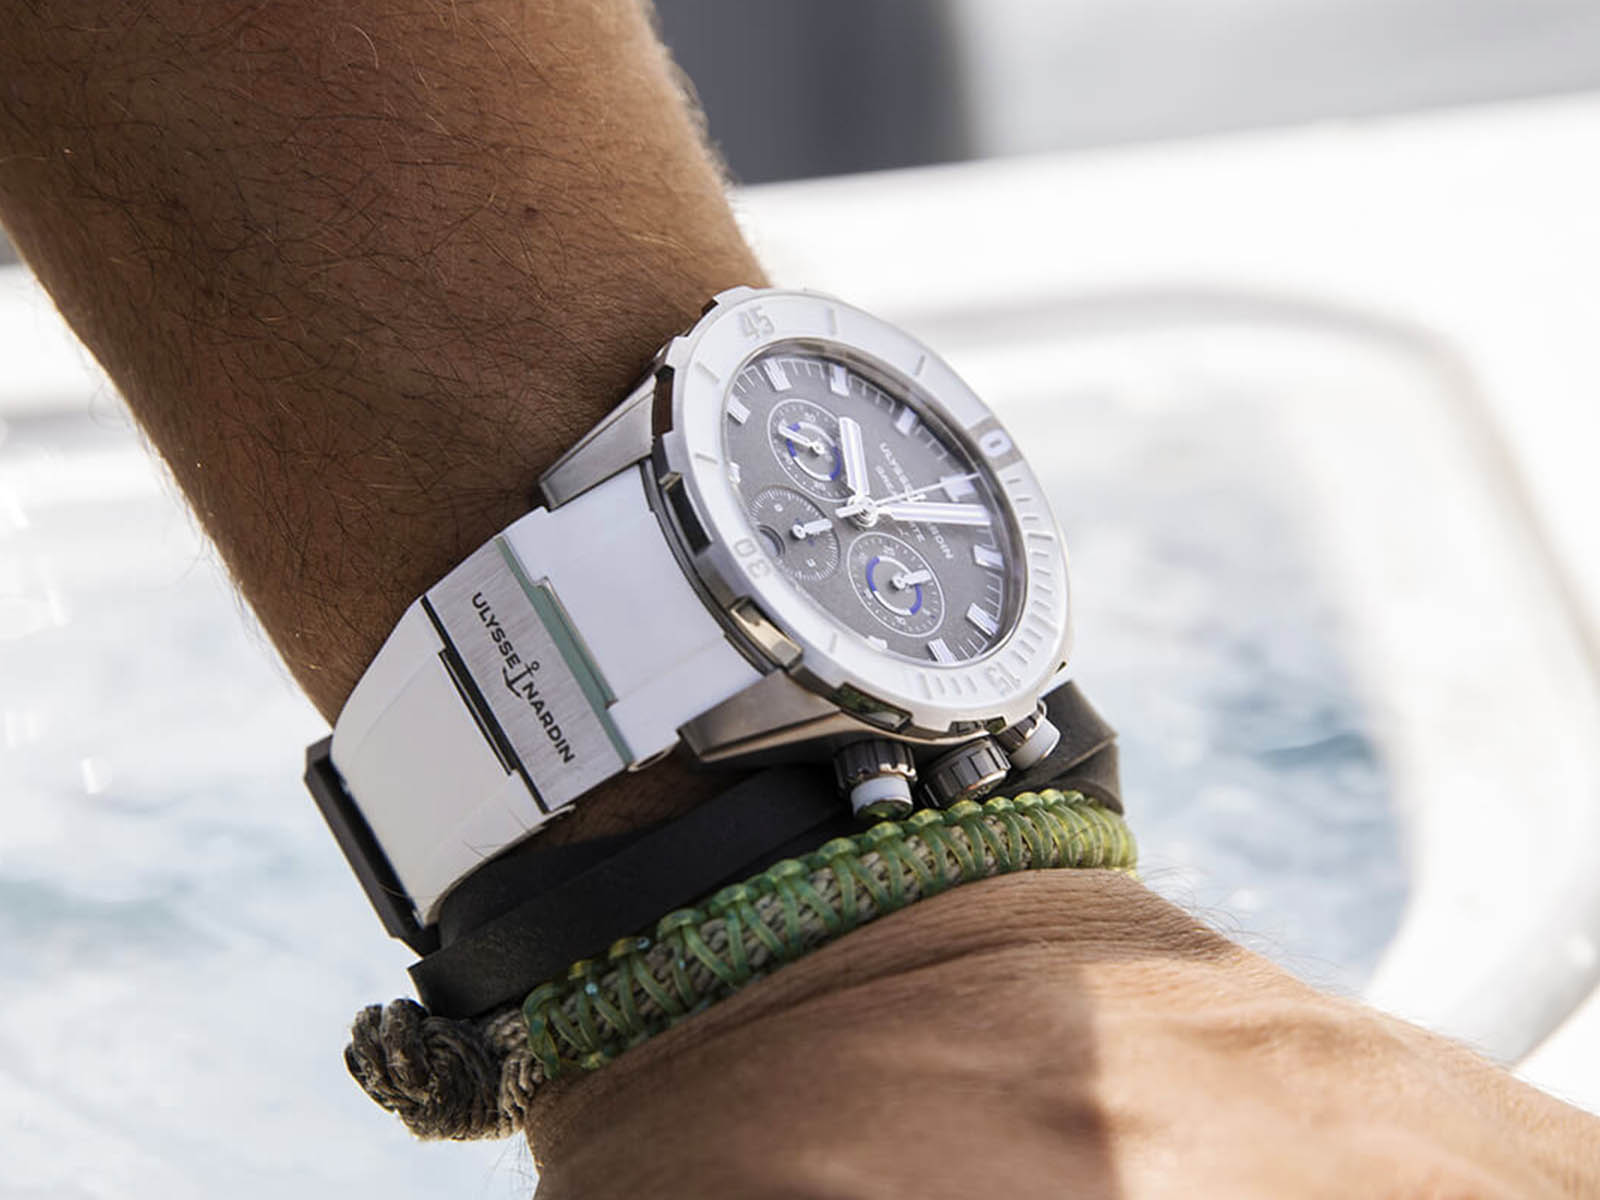 ulysse-nardin-diver-chronograph-44mm-limited-edition-great-white-2.jpg